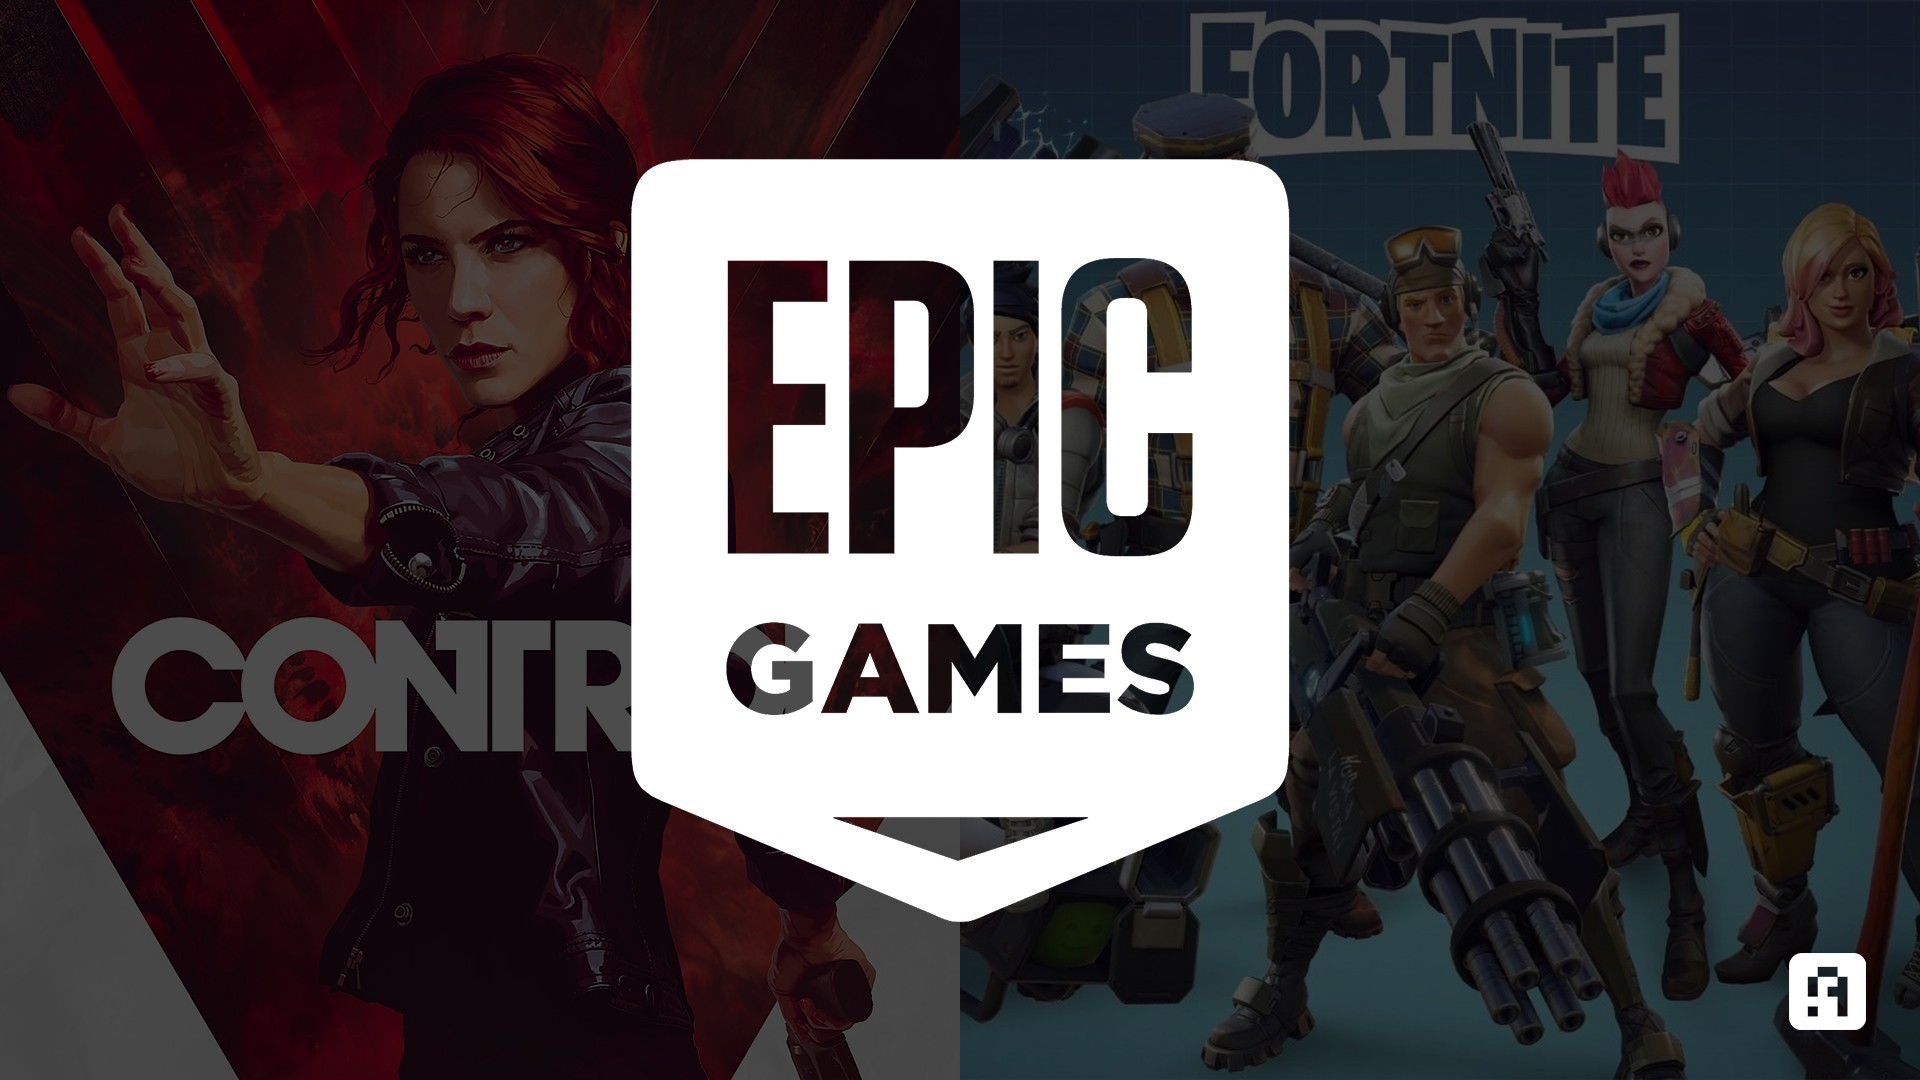 Epic Games إيبيك جيمز - Arabhardware Generic Photos